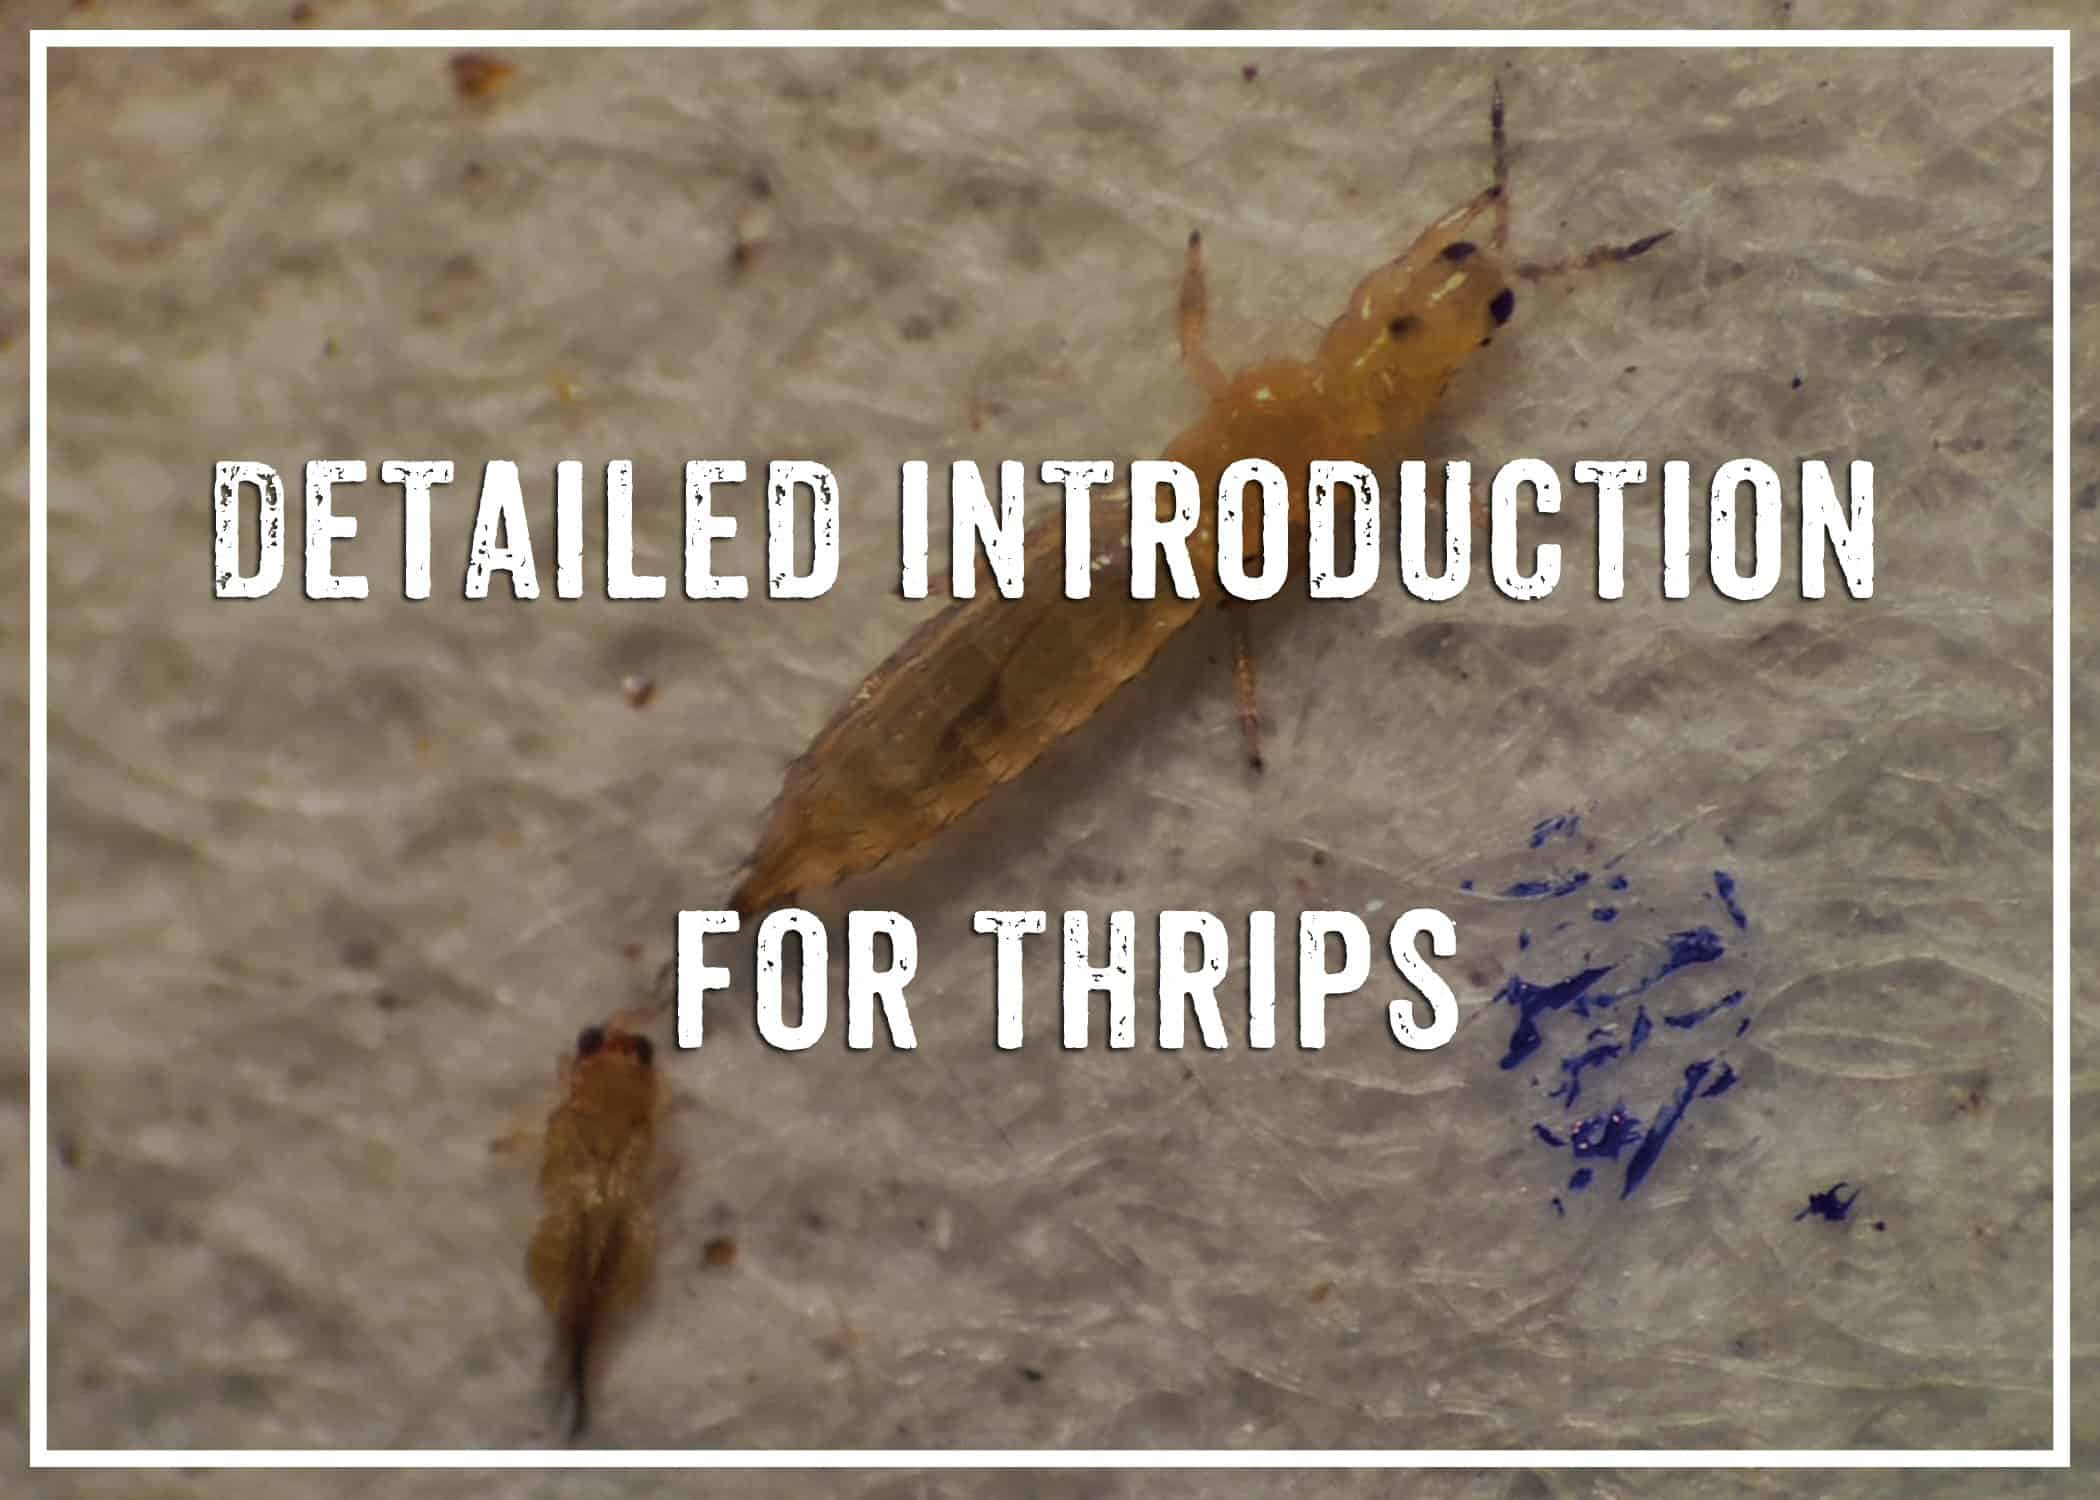 Detailed Introduction for thrips